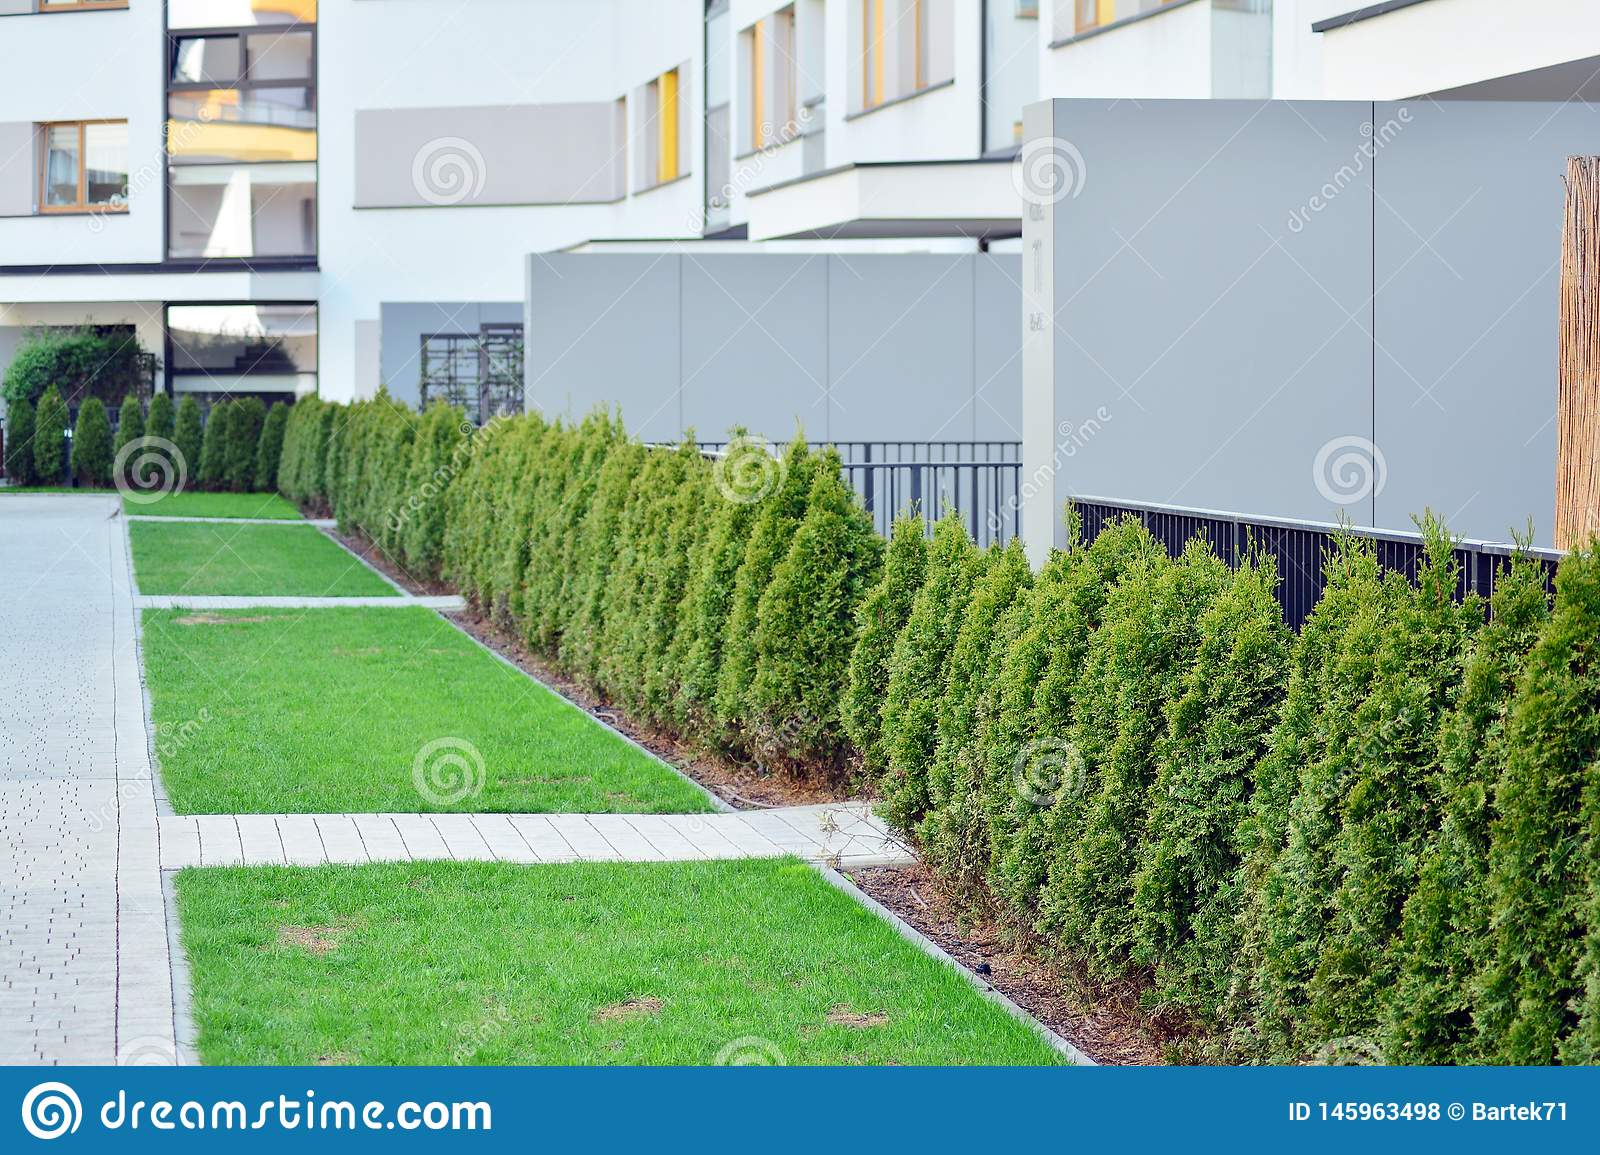 Space building seedlings of trees and shrubs